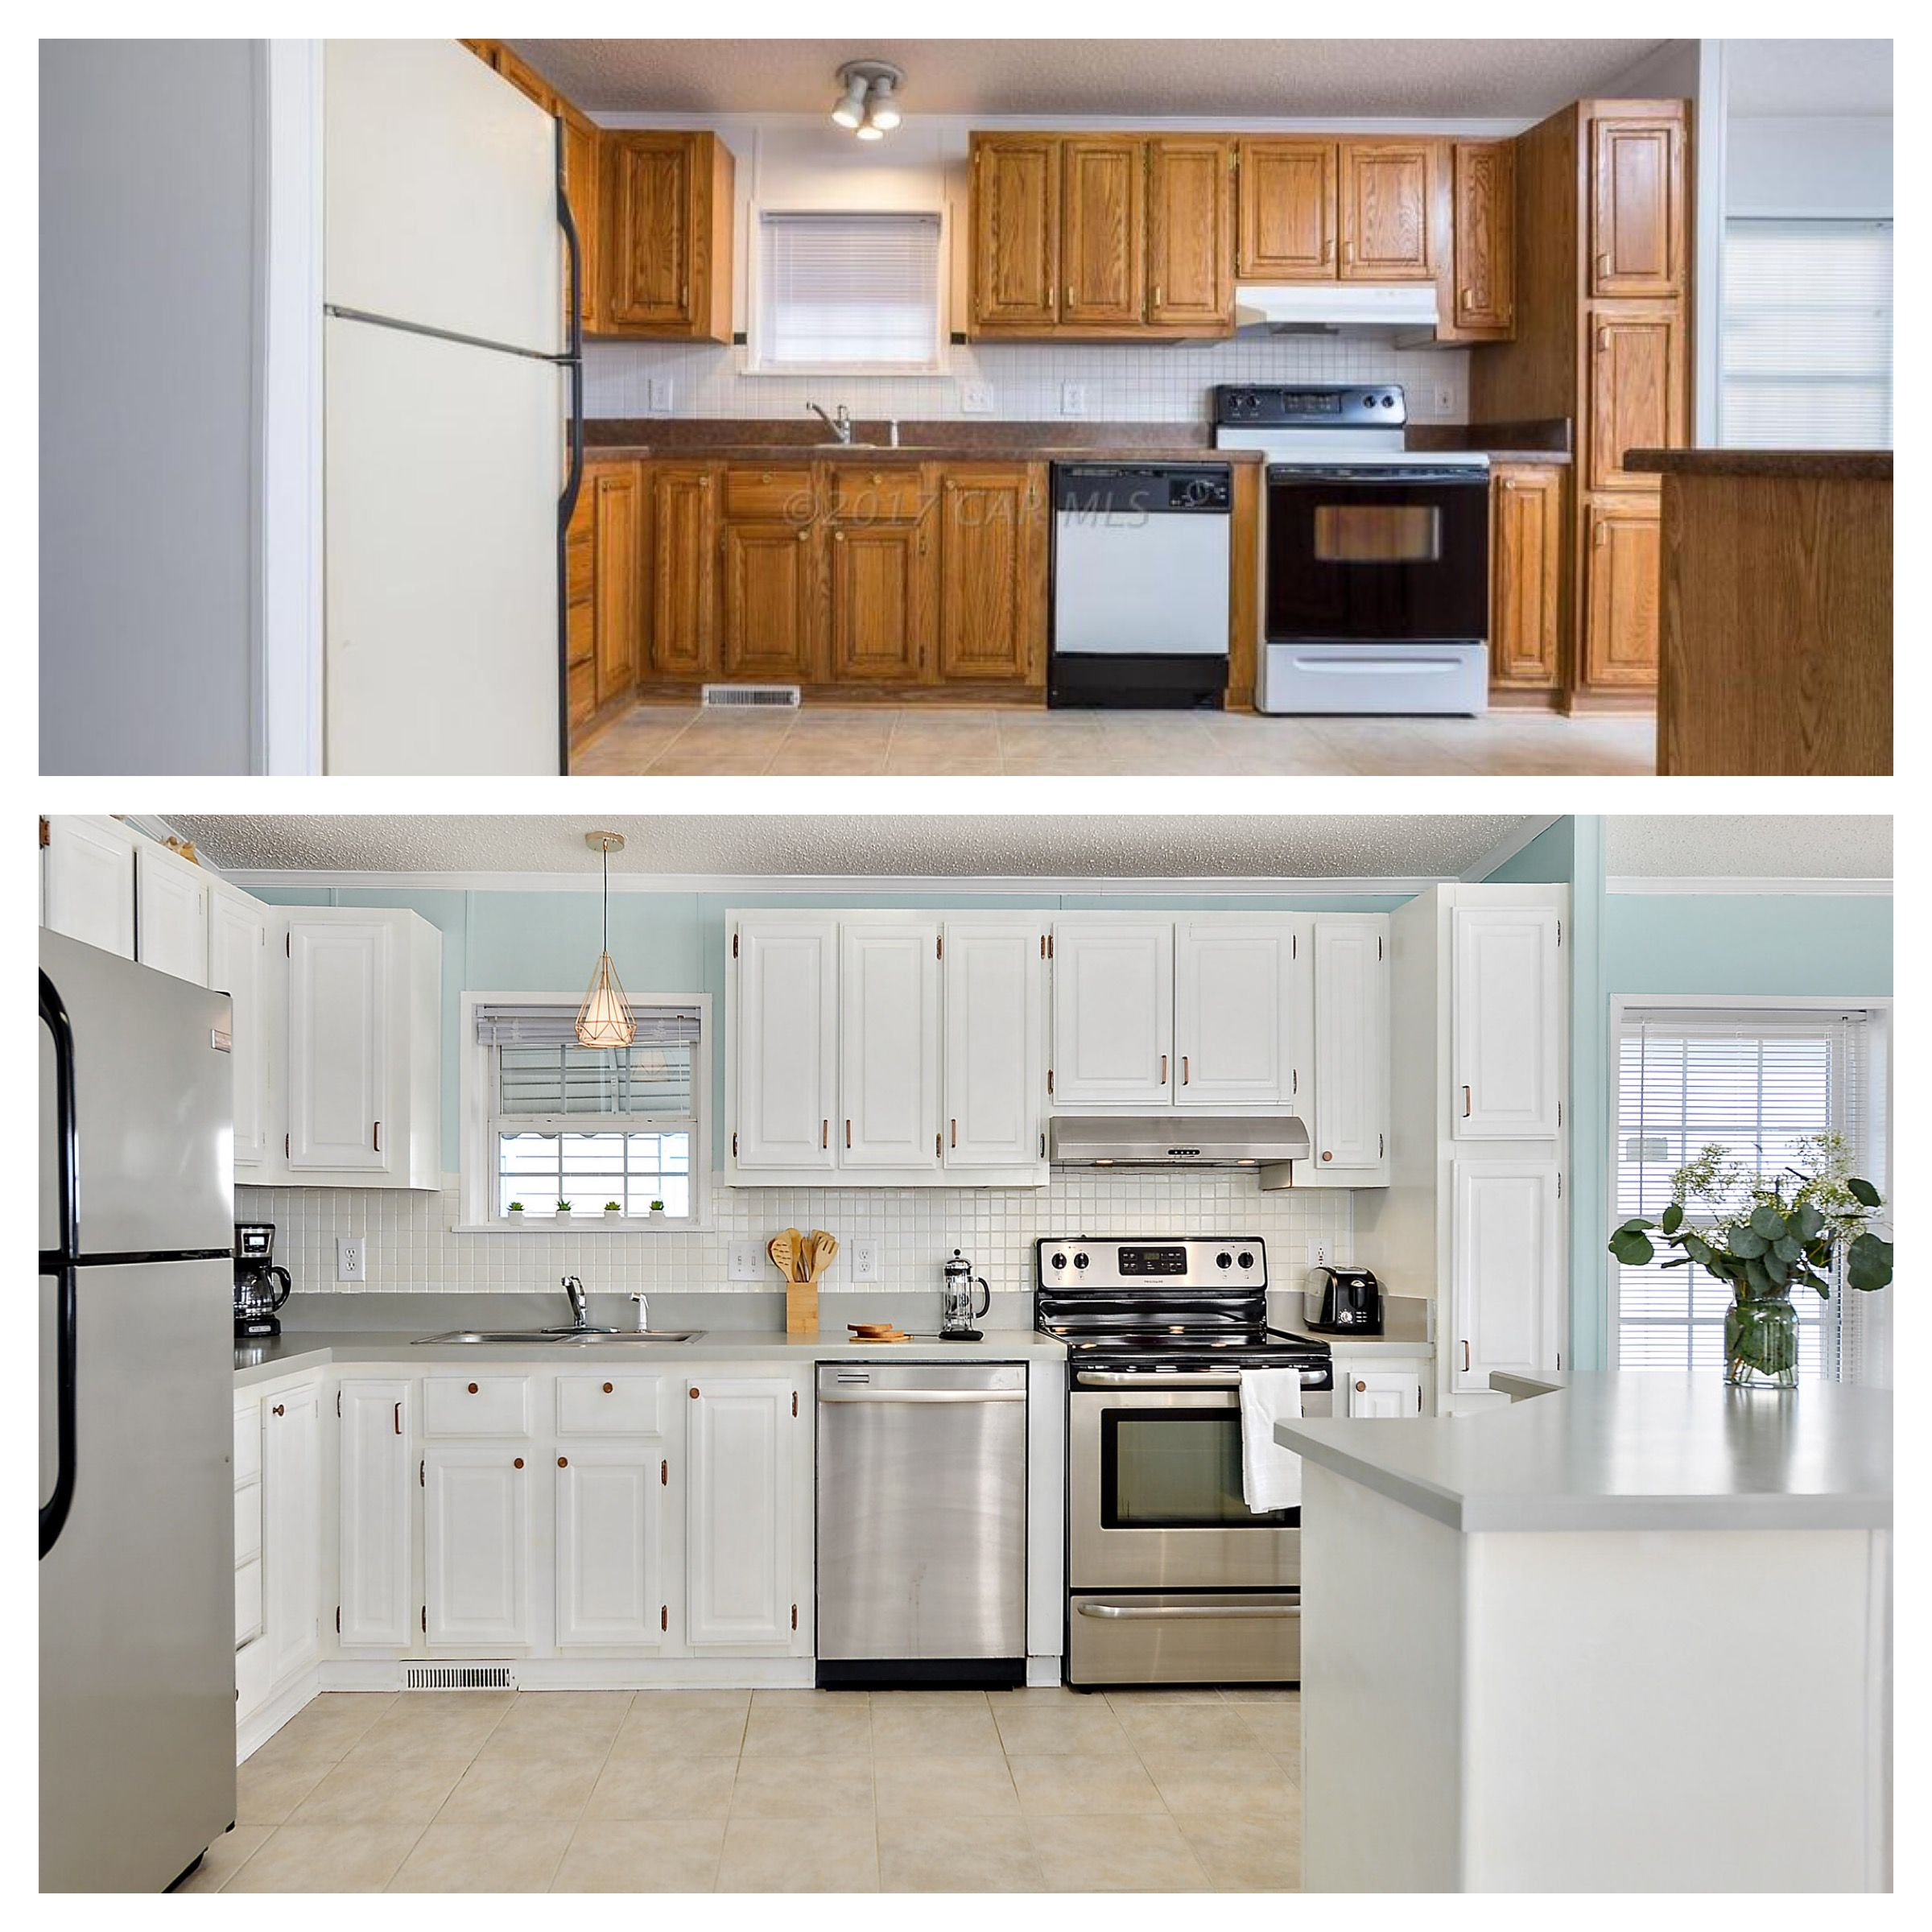 Before and after! Look what you can do to your outdated